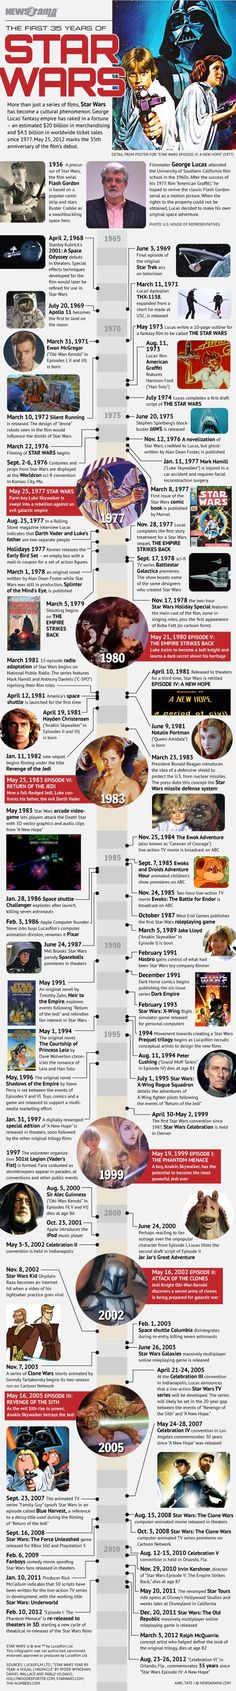 Star Wars 35th Anniversary Timeline Infographic #StarWars (via @sunipeyk)